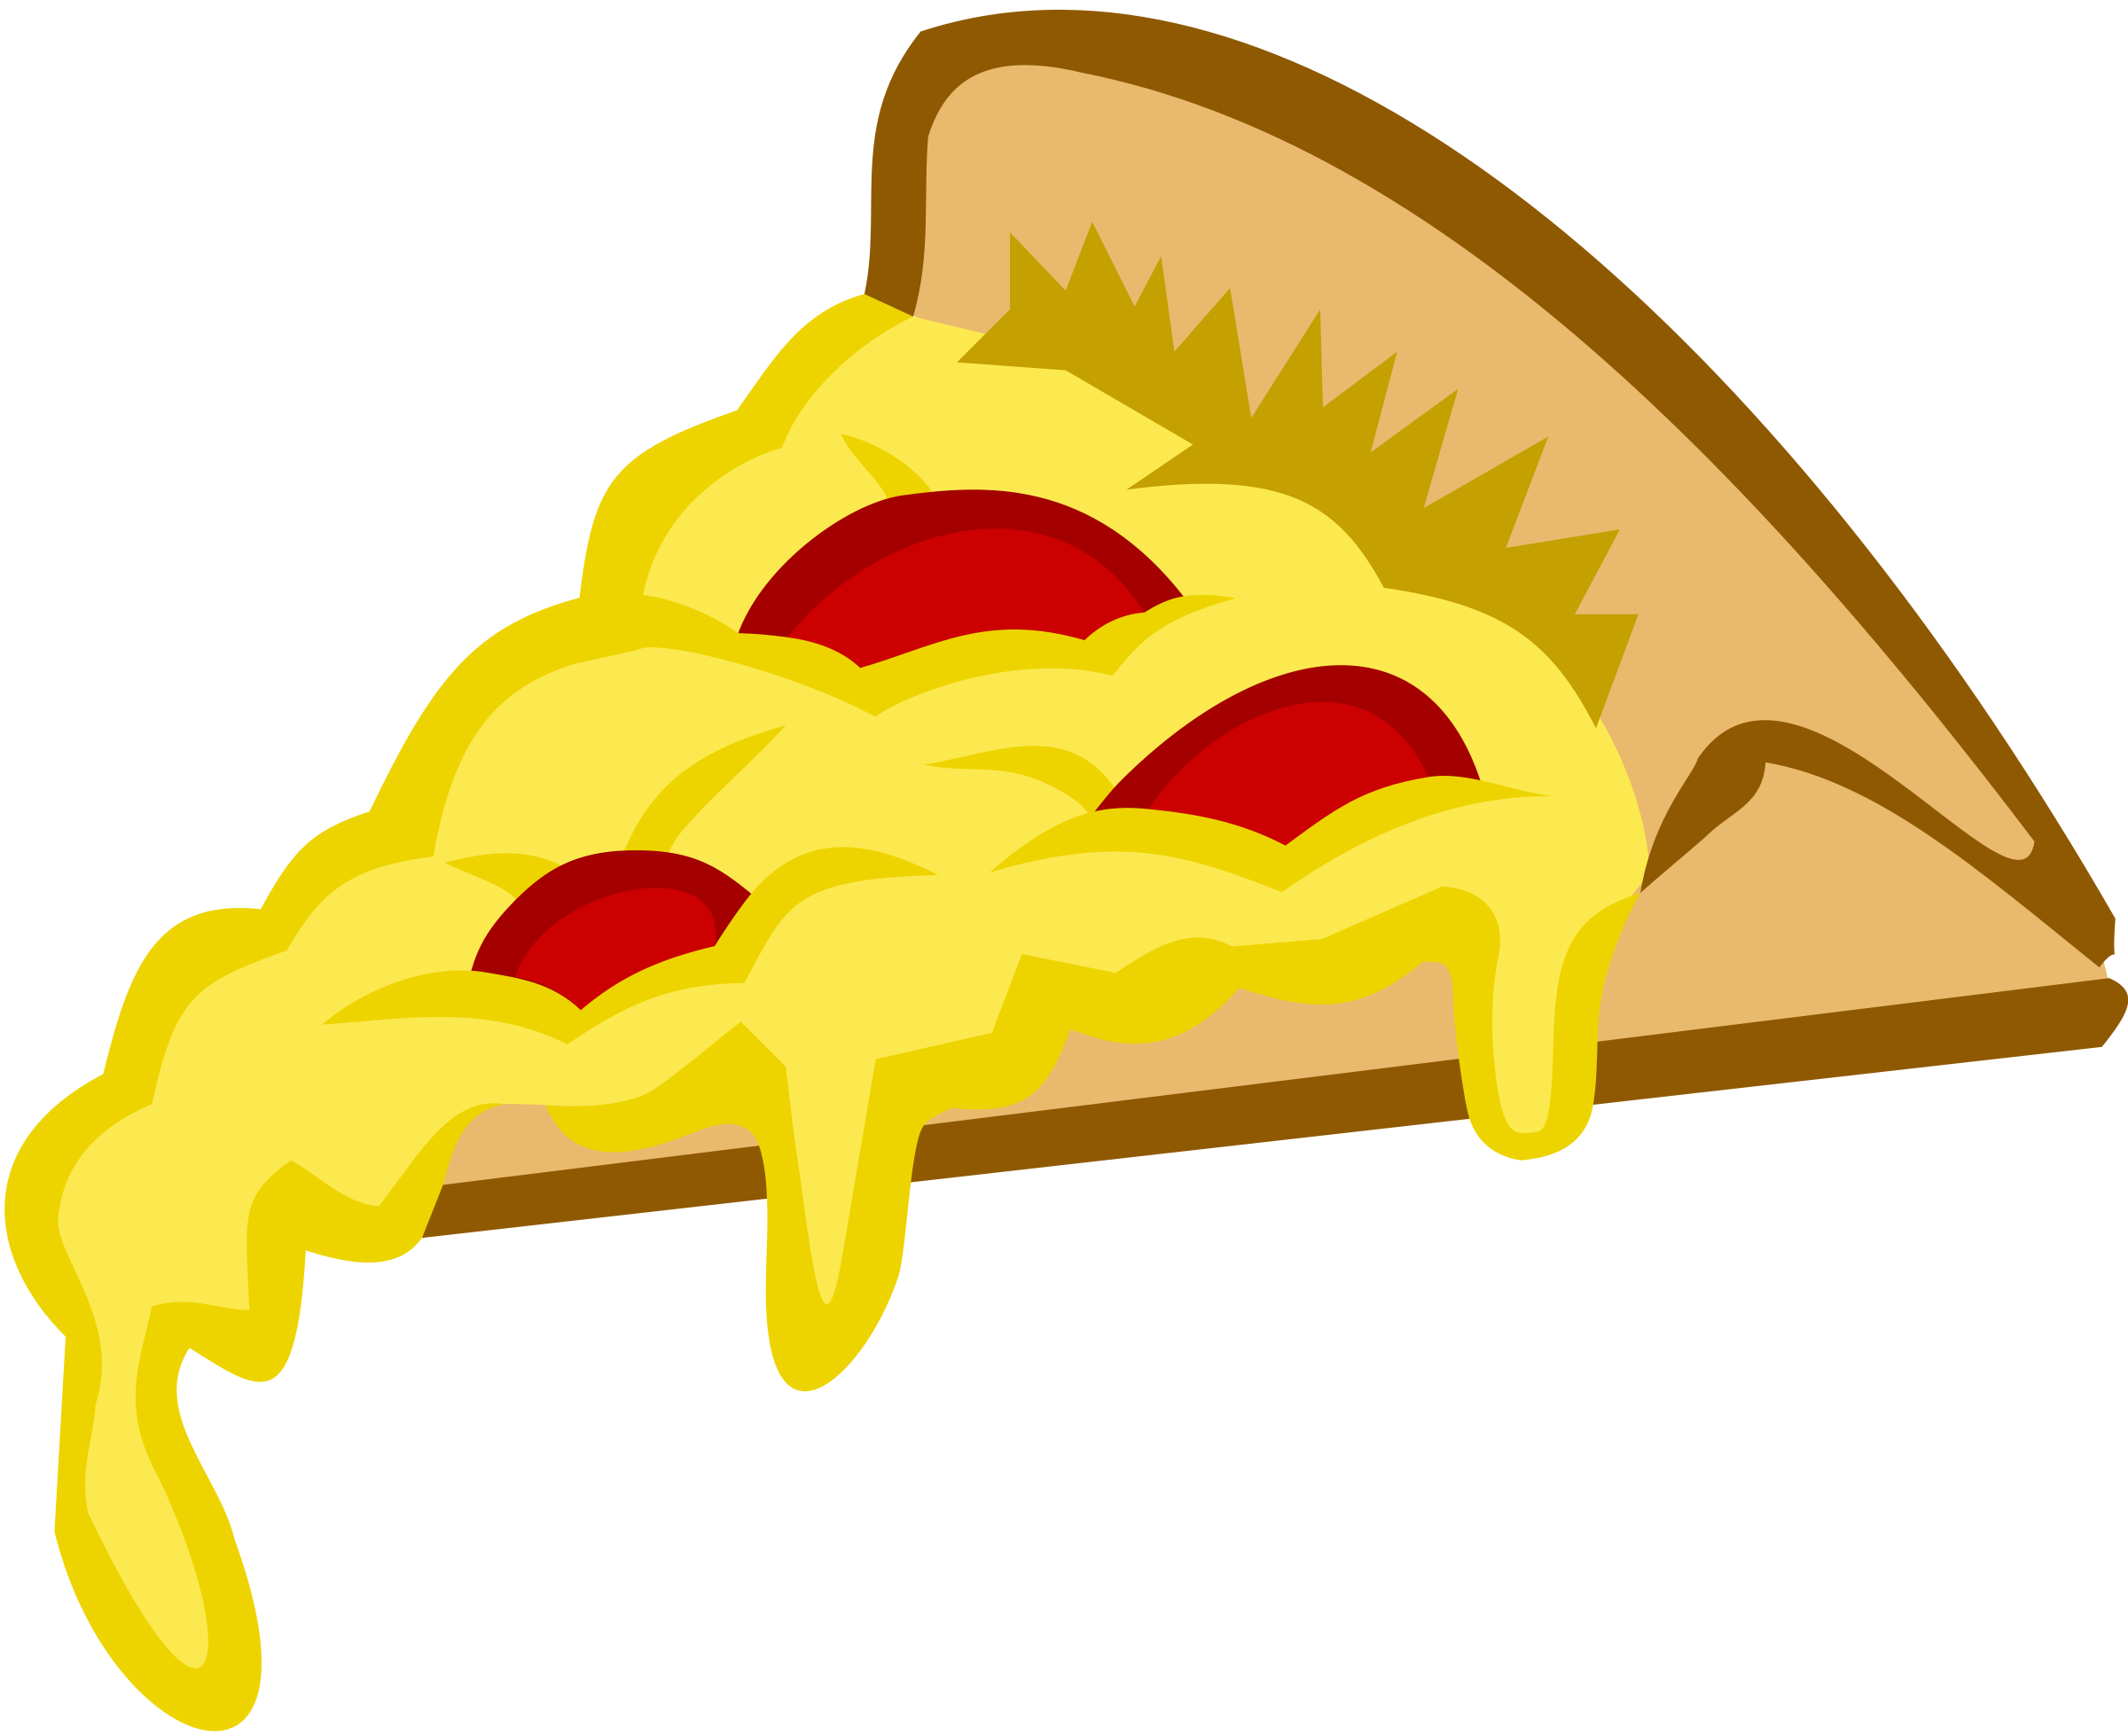 Free Clipart Cheese Pizza